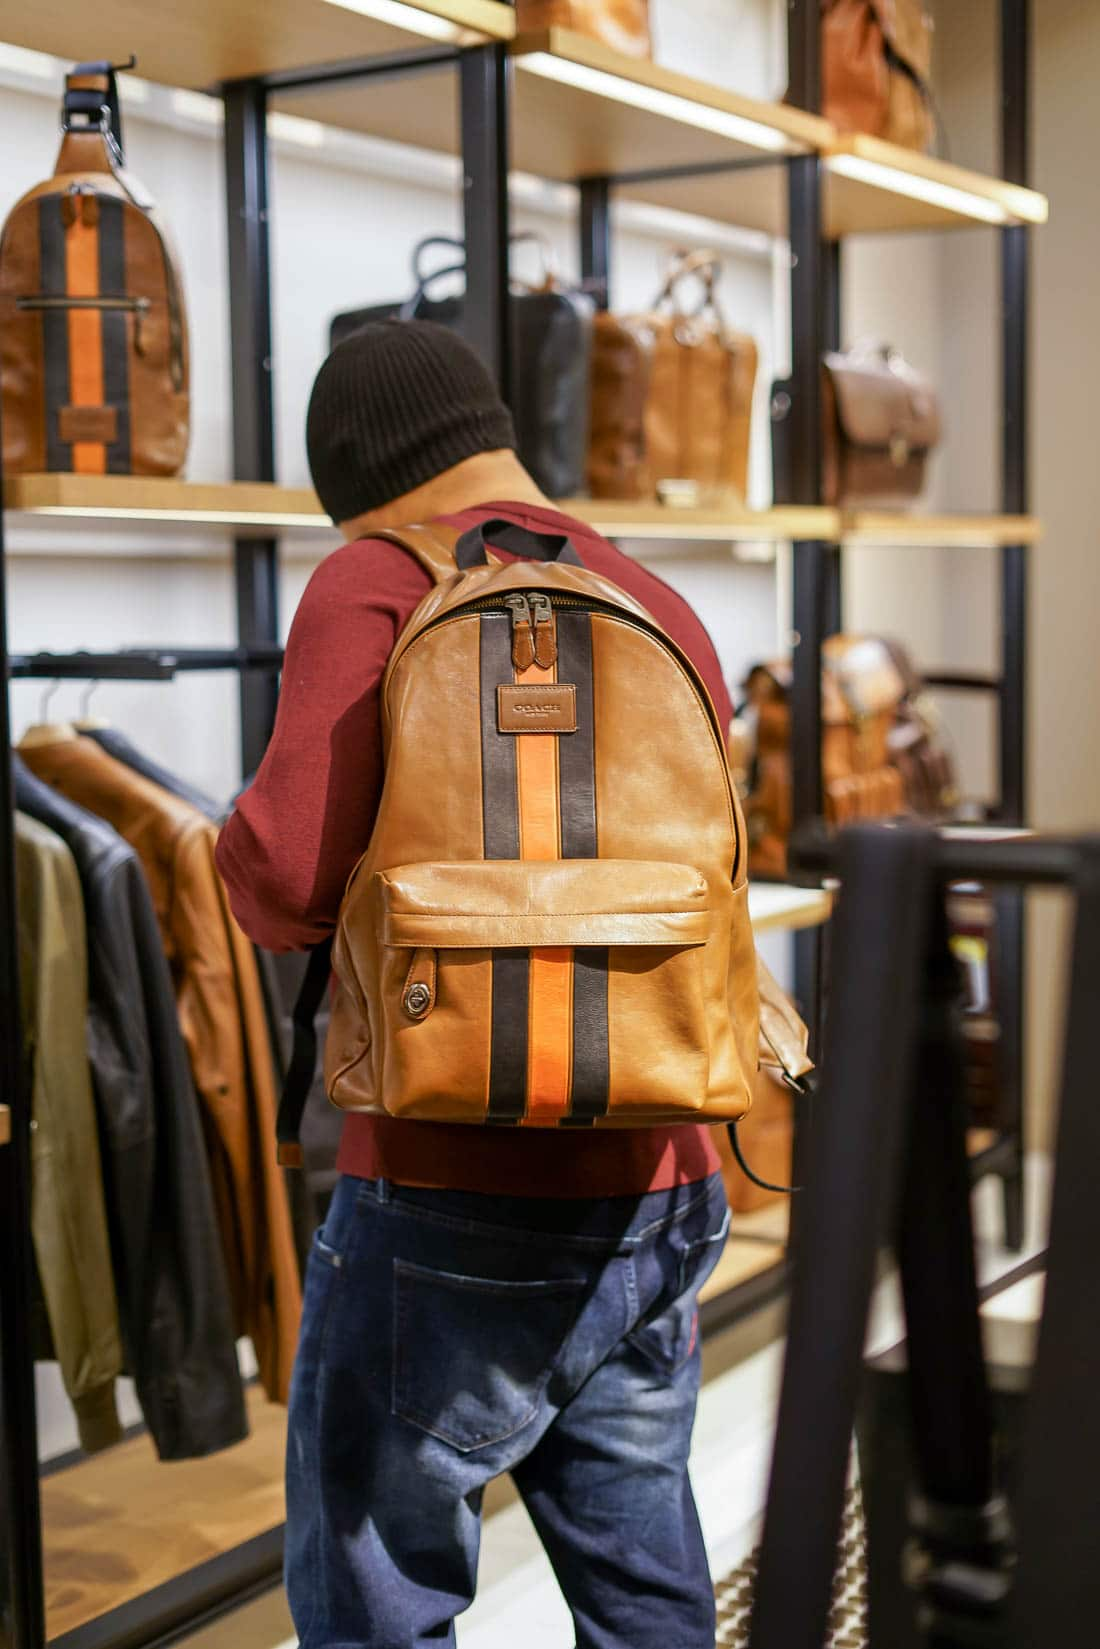 Nov 05, · 1. More trouble in mall land: Wall Street is bracing for more signs of the retail apocalypse this week when Macy's and Nordstrom detail the latest pain from the loss of mall shoppers who've.